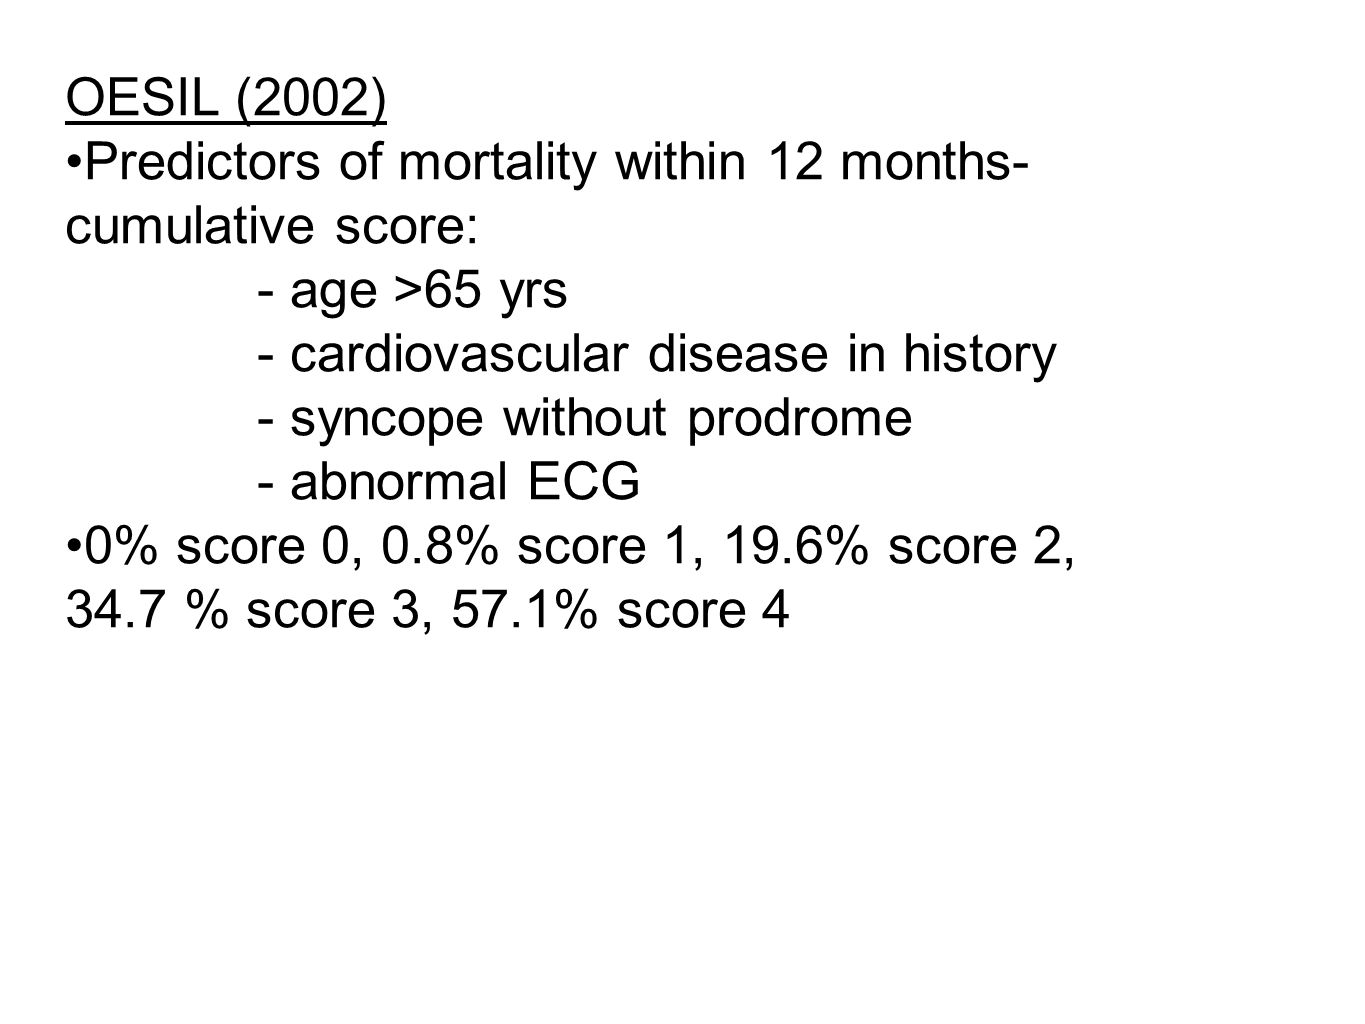 OESIL (2002) Predictors of mortality within 12 months- cumulative score: - age >65 yrs - cardiovascular disease in history - syncope without prodrome